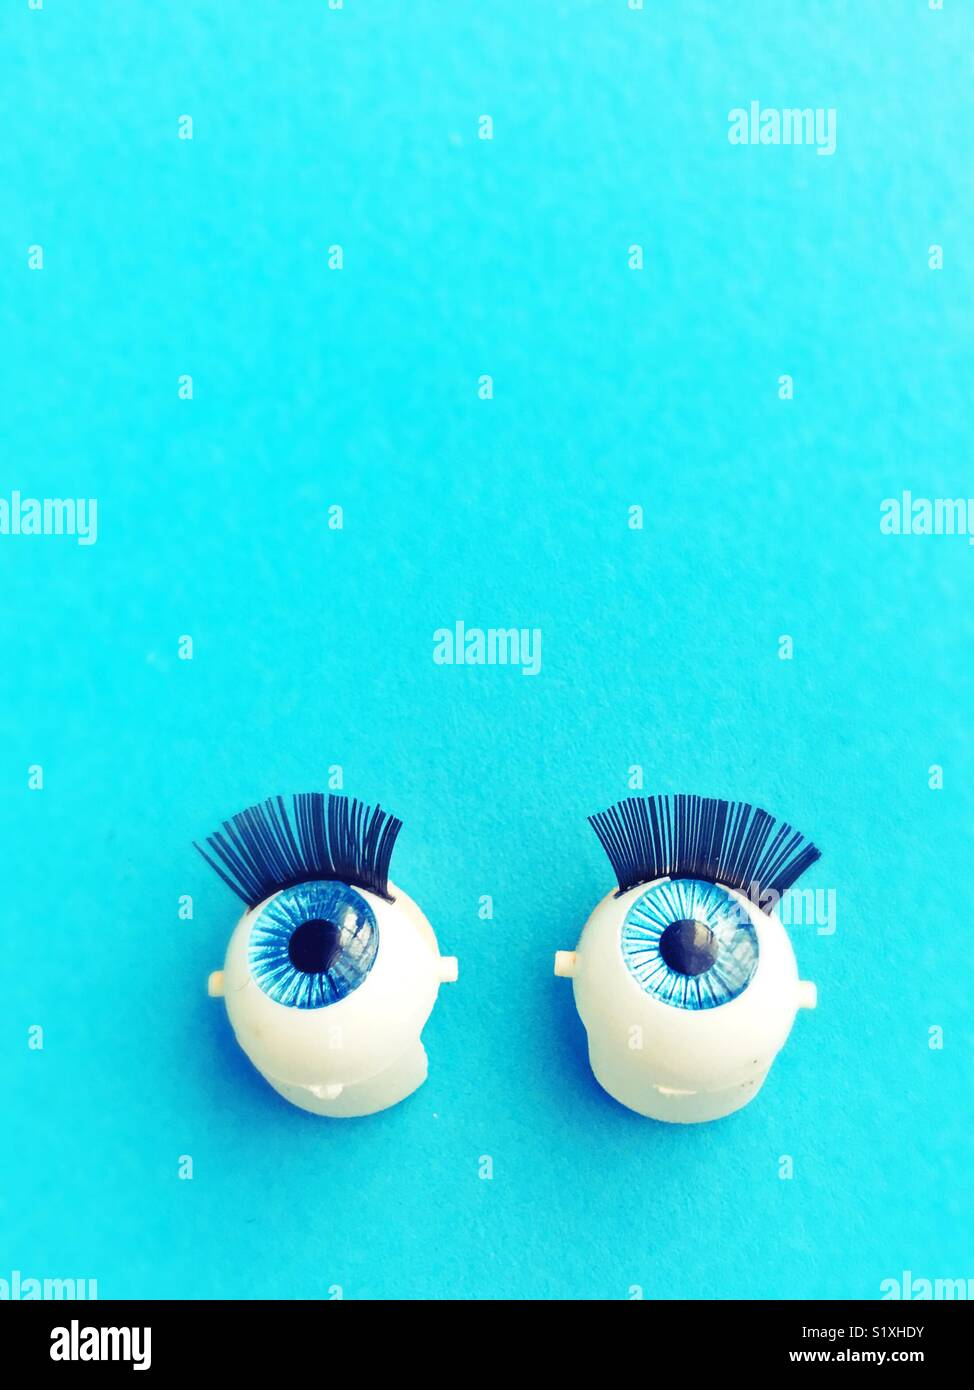 A set of blue doll eyes. - Stock Image